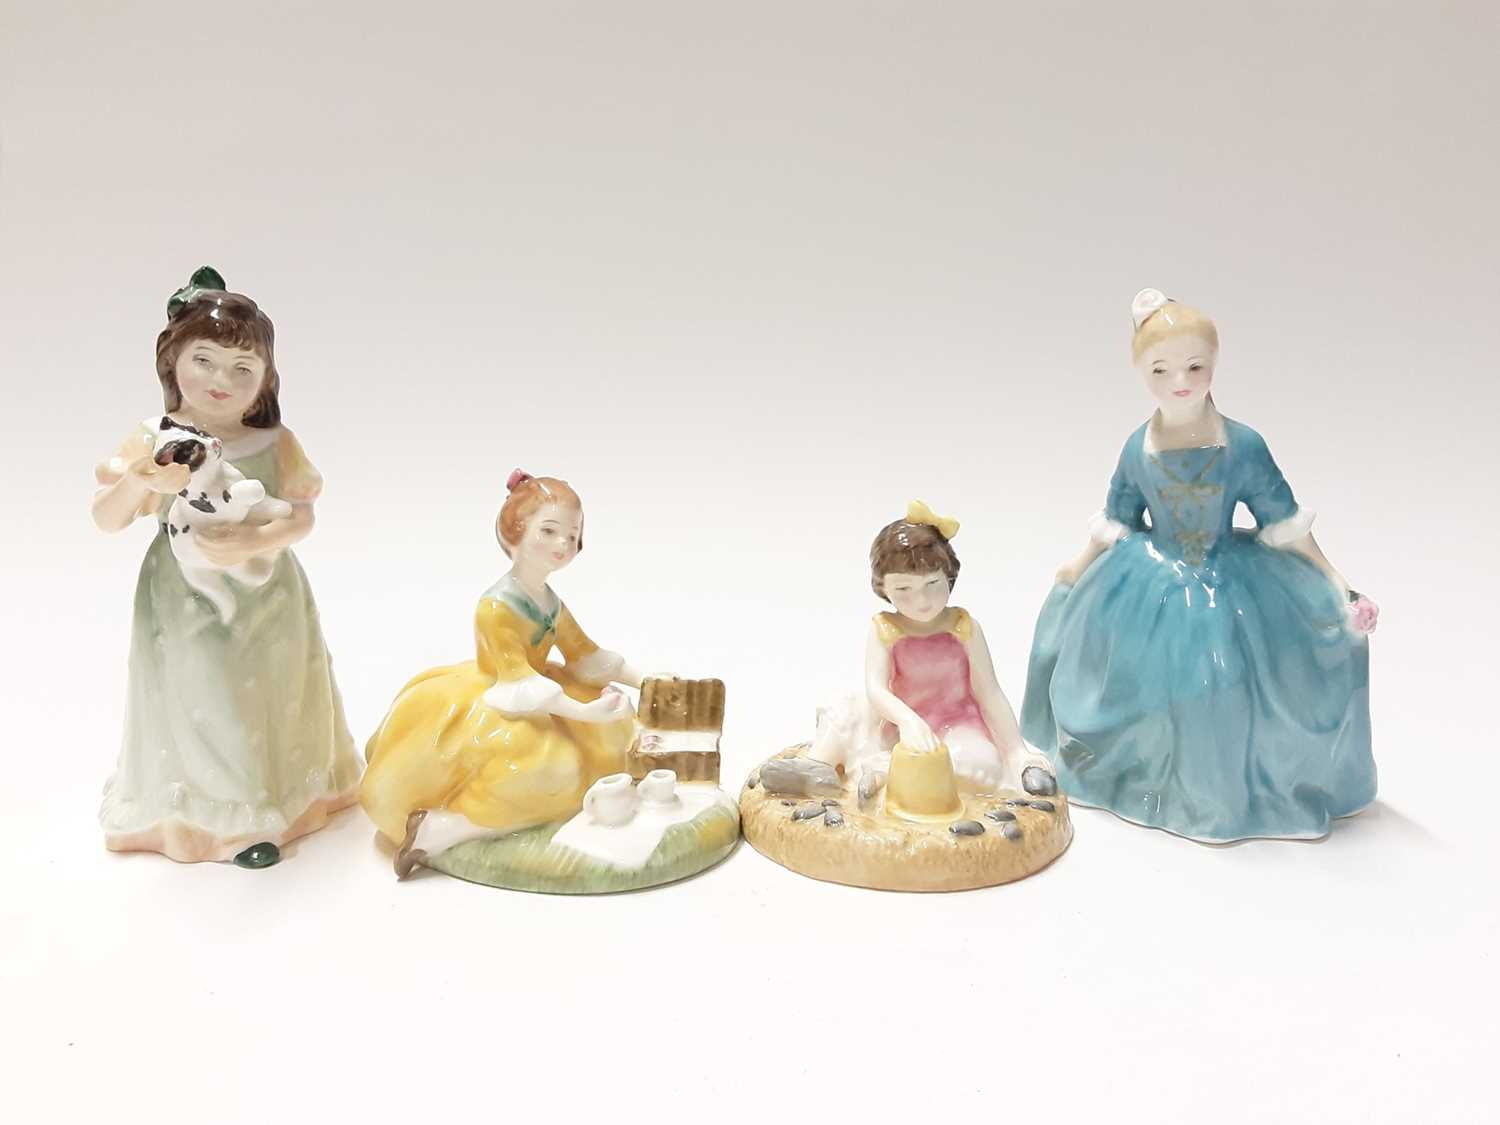 Lot 86 - Eight Royal Doulton figures - On The Beach HN3877, Picnic HN2308, My First Figurine HN3424, Almost Grown HN3425, Home At Last HN3697, Dinnertime HN3726, Special Friend HN3607 and A Child from Willi...